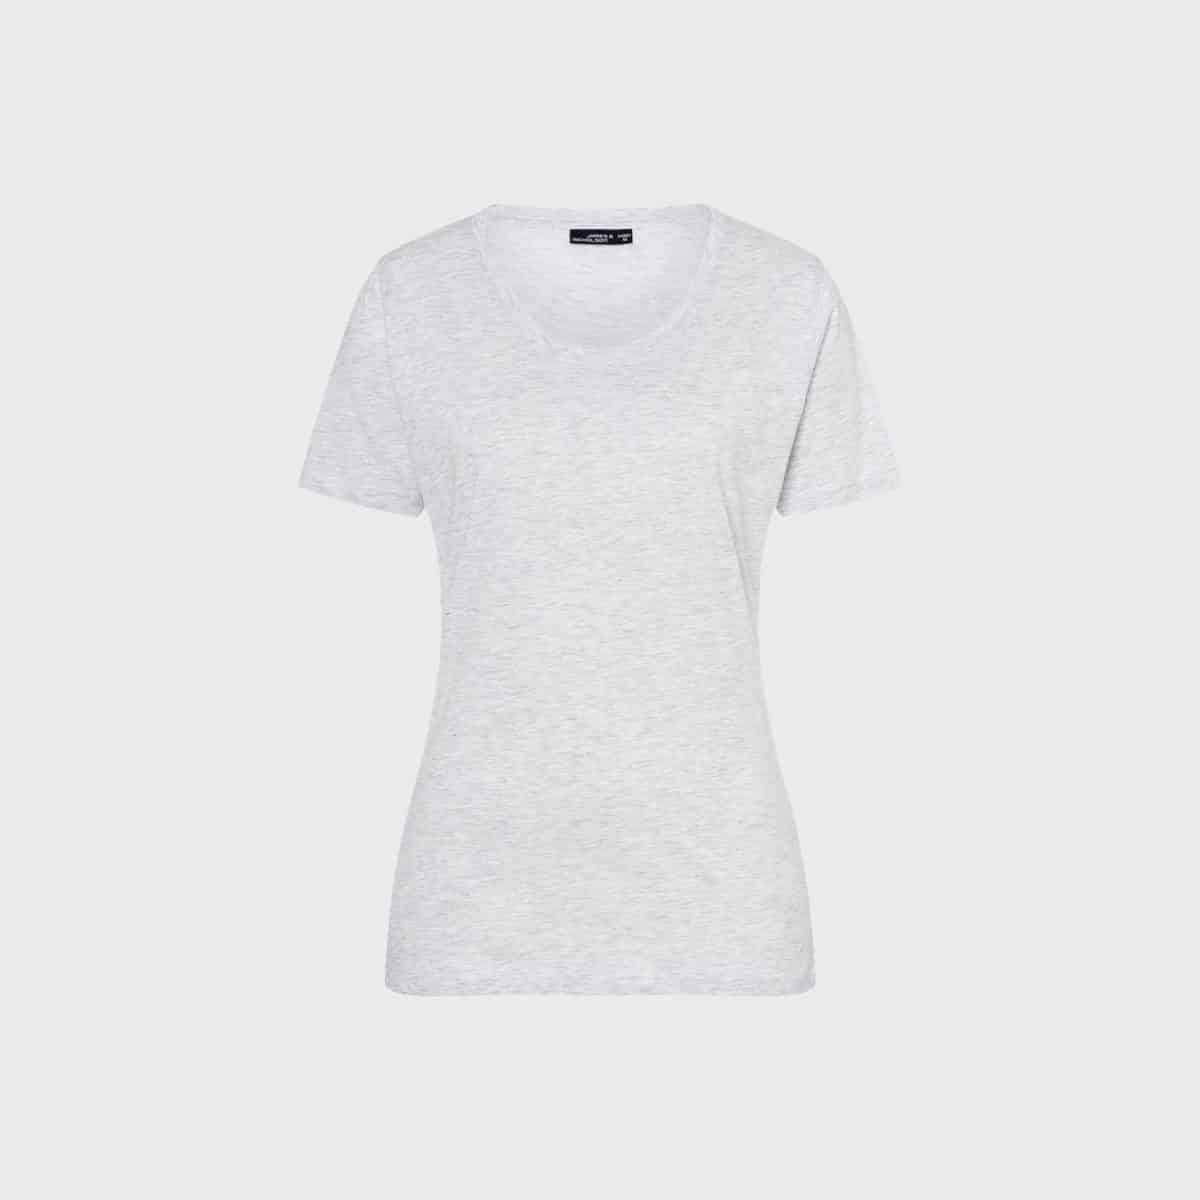 round-neck-t-shirt-damen-ash-kaufen-besticken_stickmanufaktur